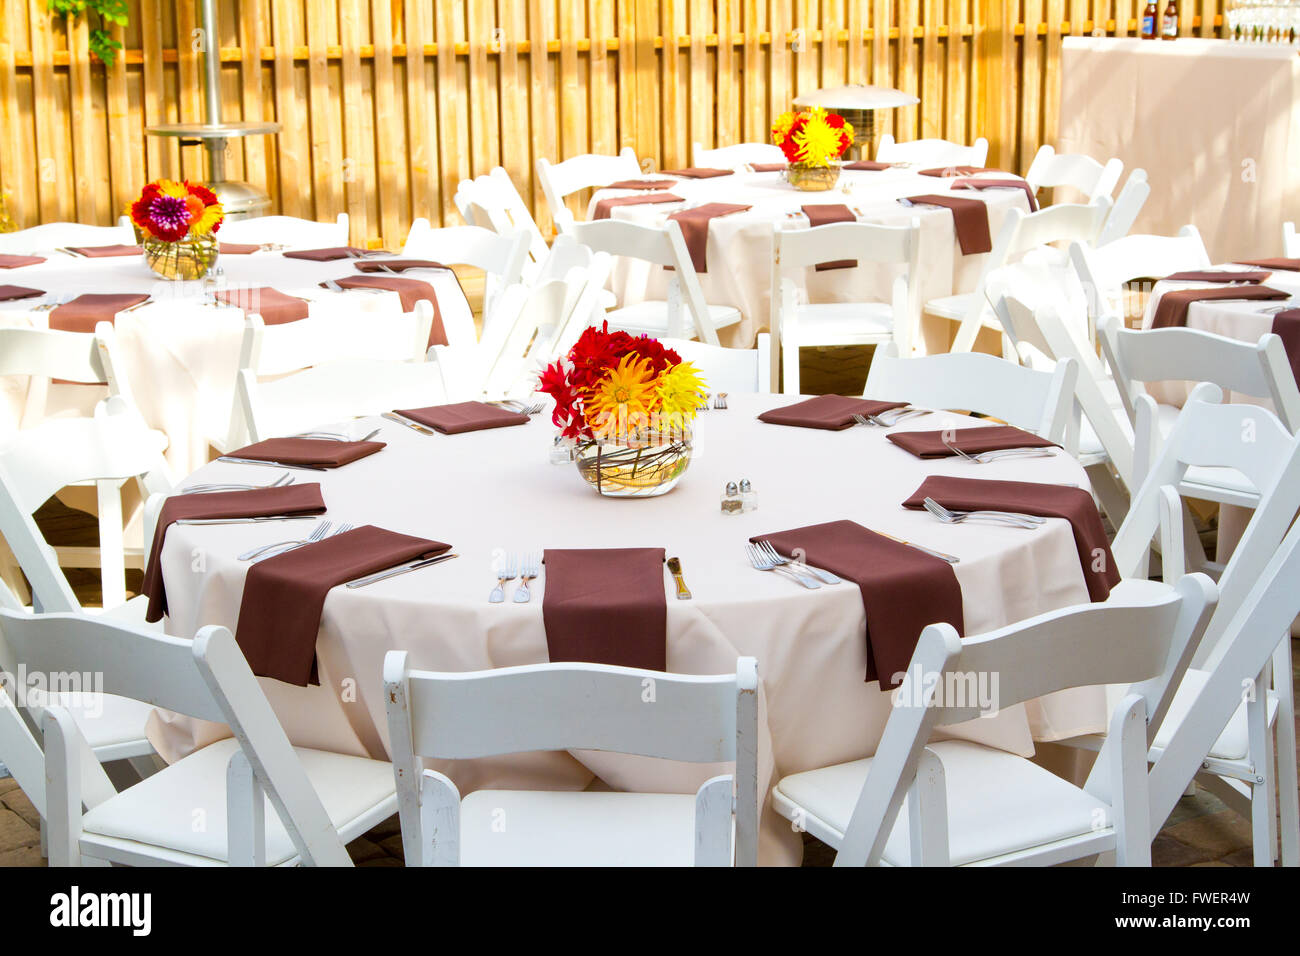 Place settings tables and chairs are empty before the guests arrive at a wedding reception. & Place settings tables and chairs are empty before the guests ...